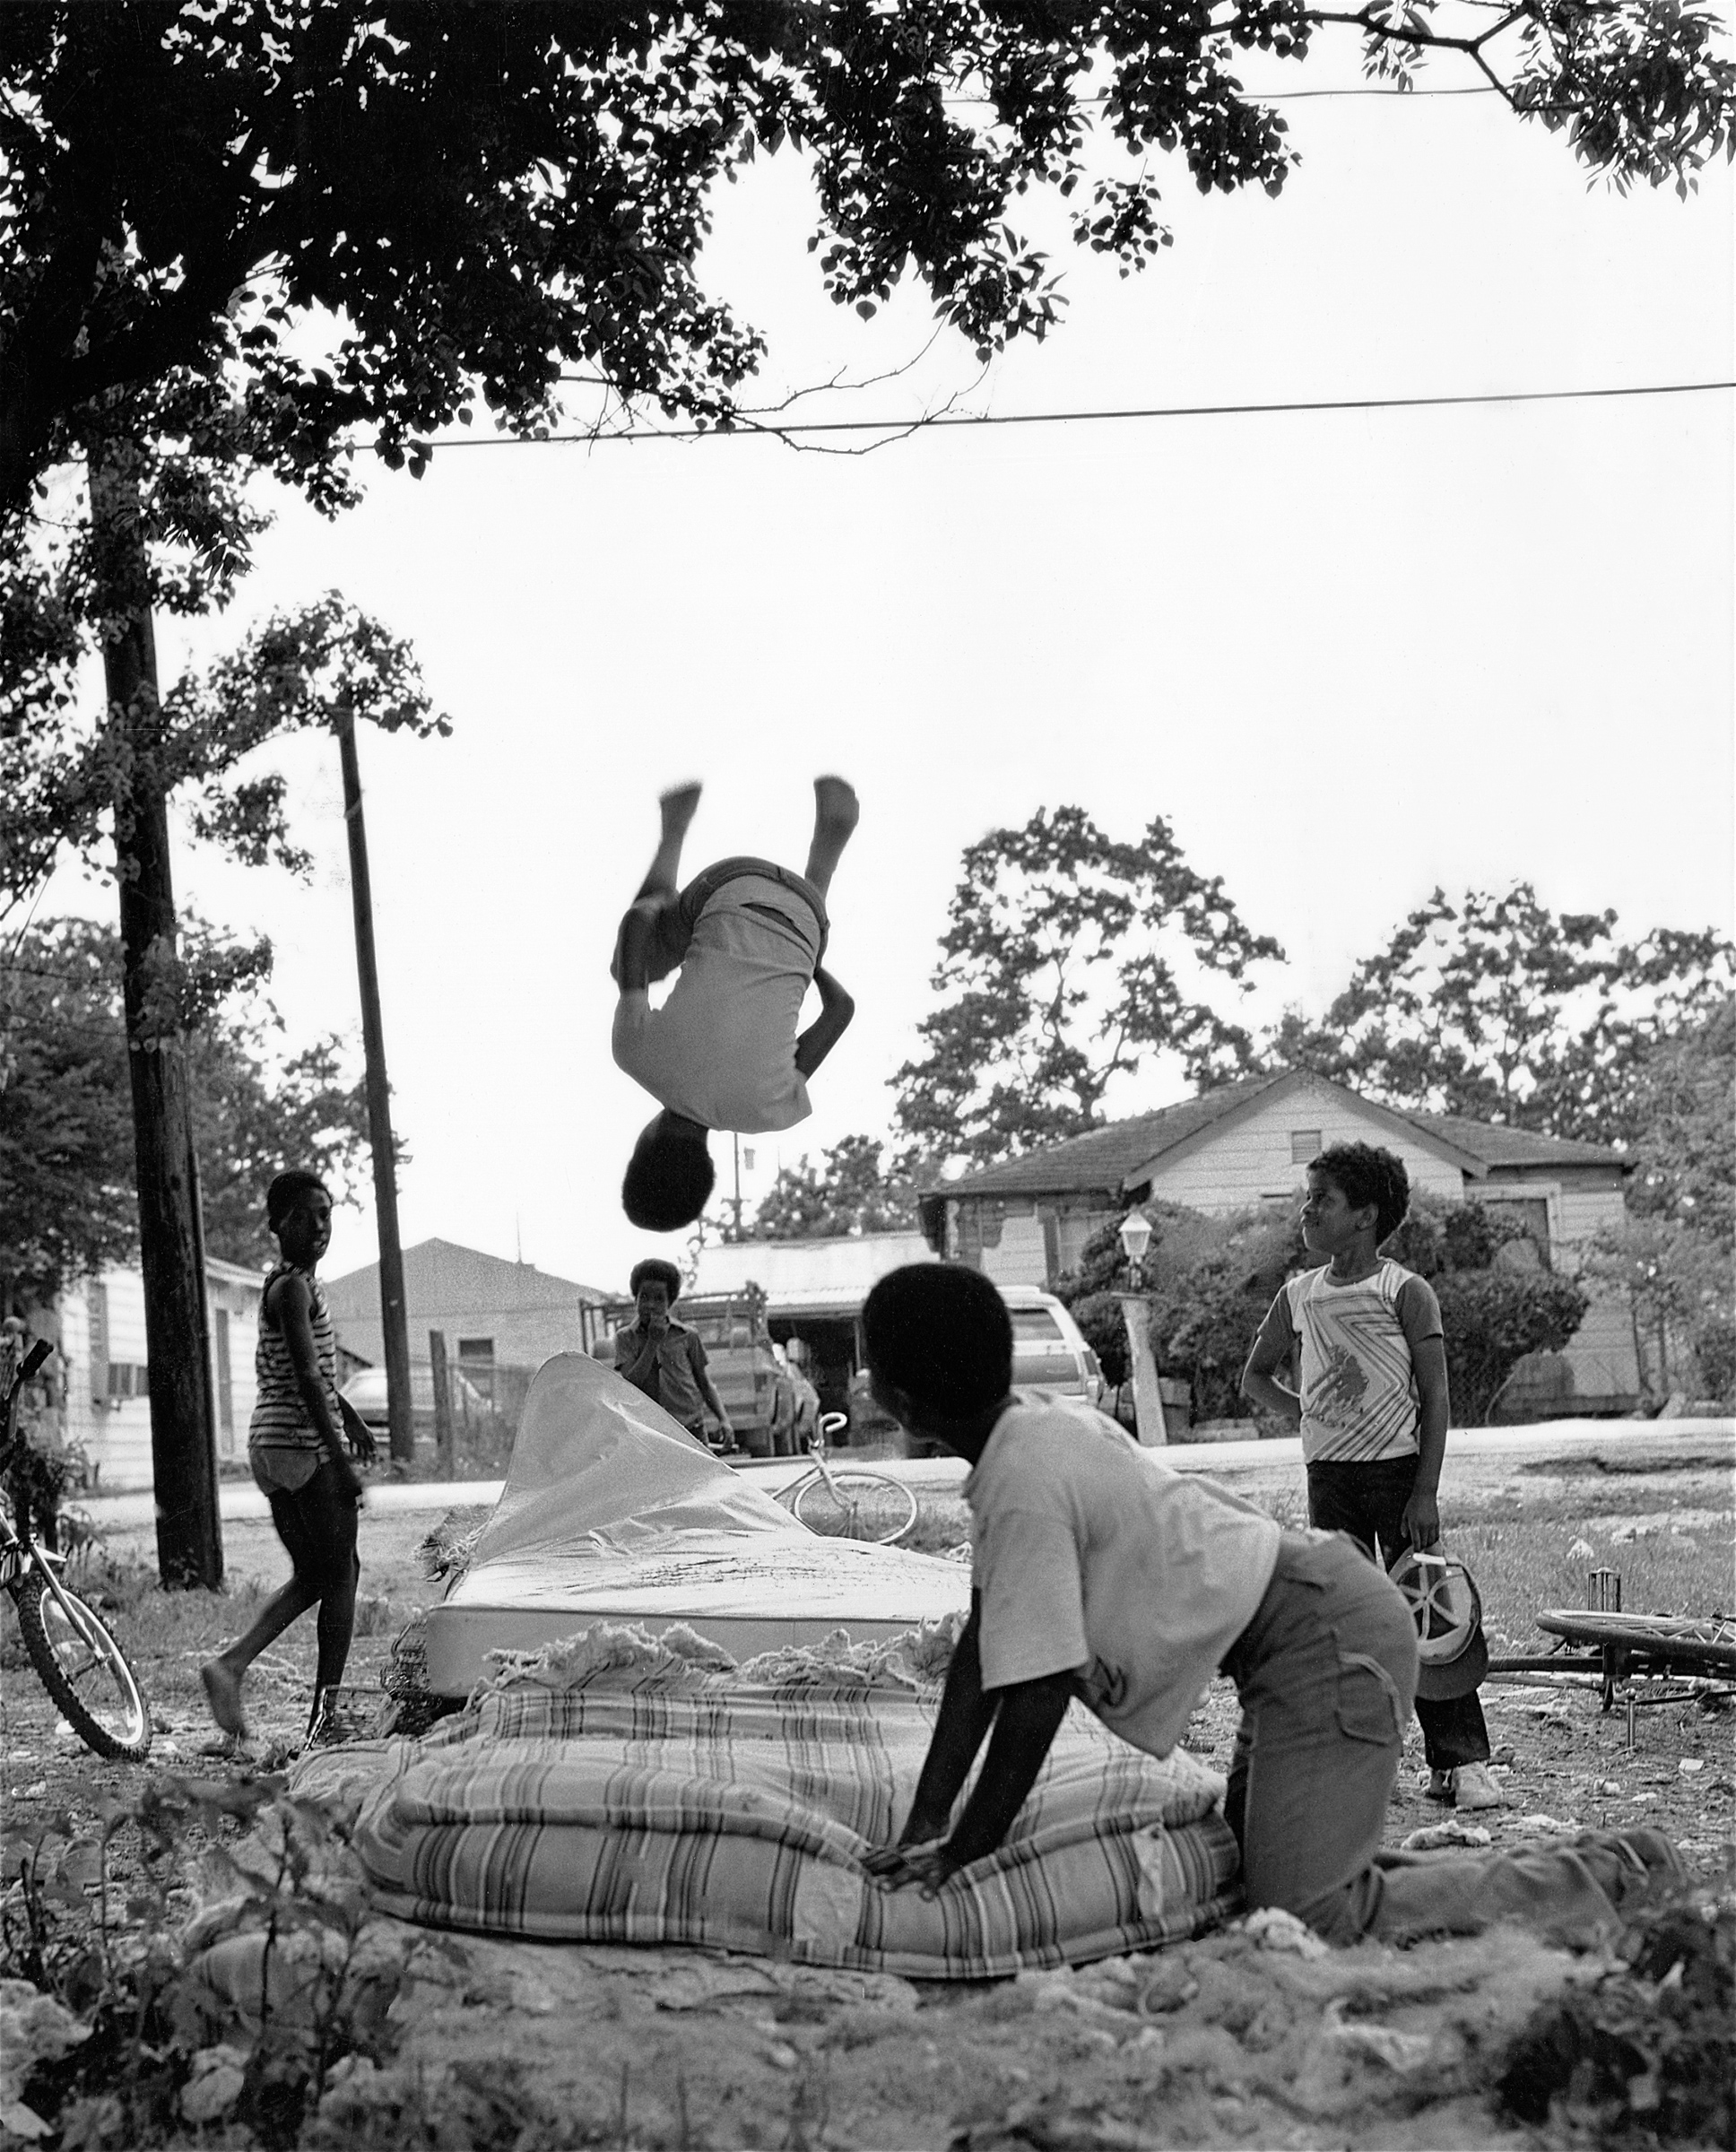 """Bouncing Boys (1981). """"The yard becomes an extension of the house when it's hot out,"""" Earlie says. """"In the inner city, people learn how to improvise to live and survive."""""""